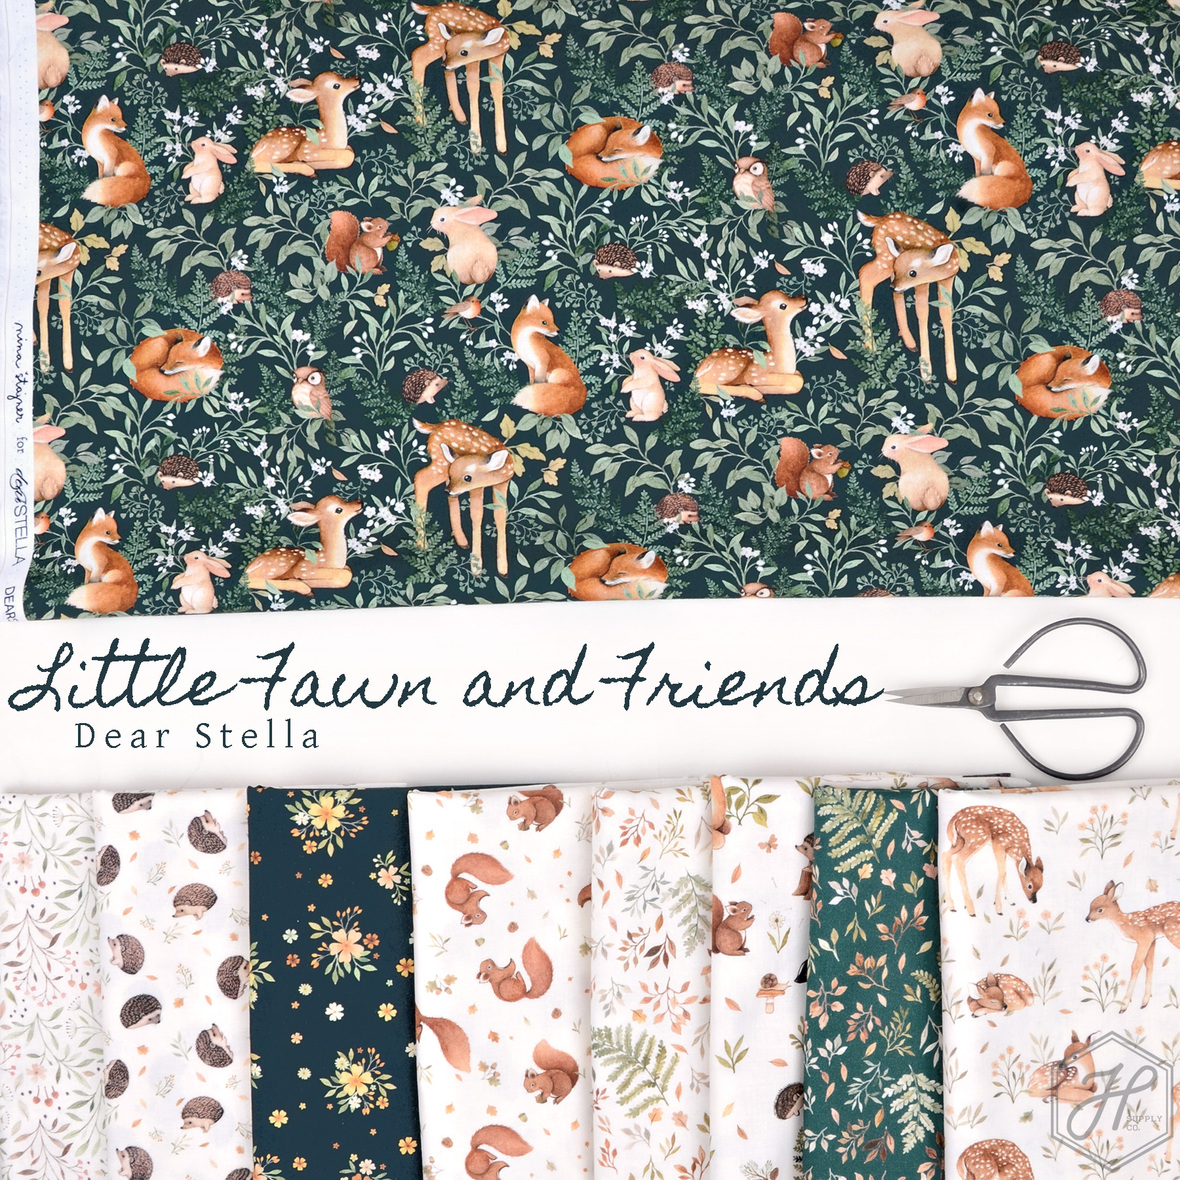 Little Fawn and Friends Fabric Dear Stella at Hawthorne Supply Co